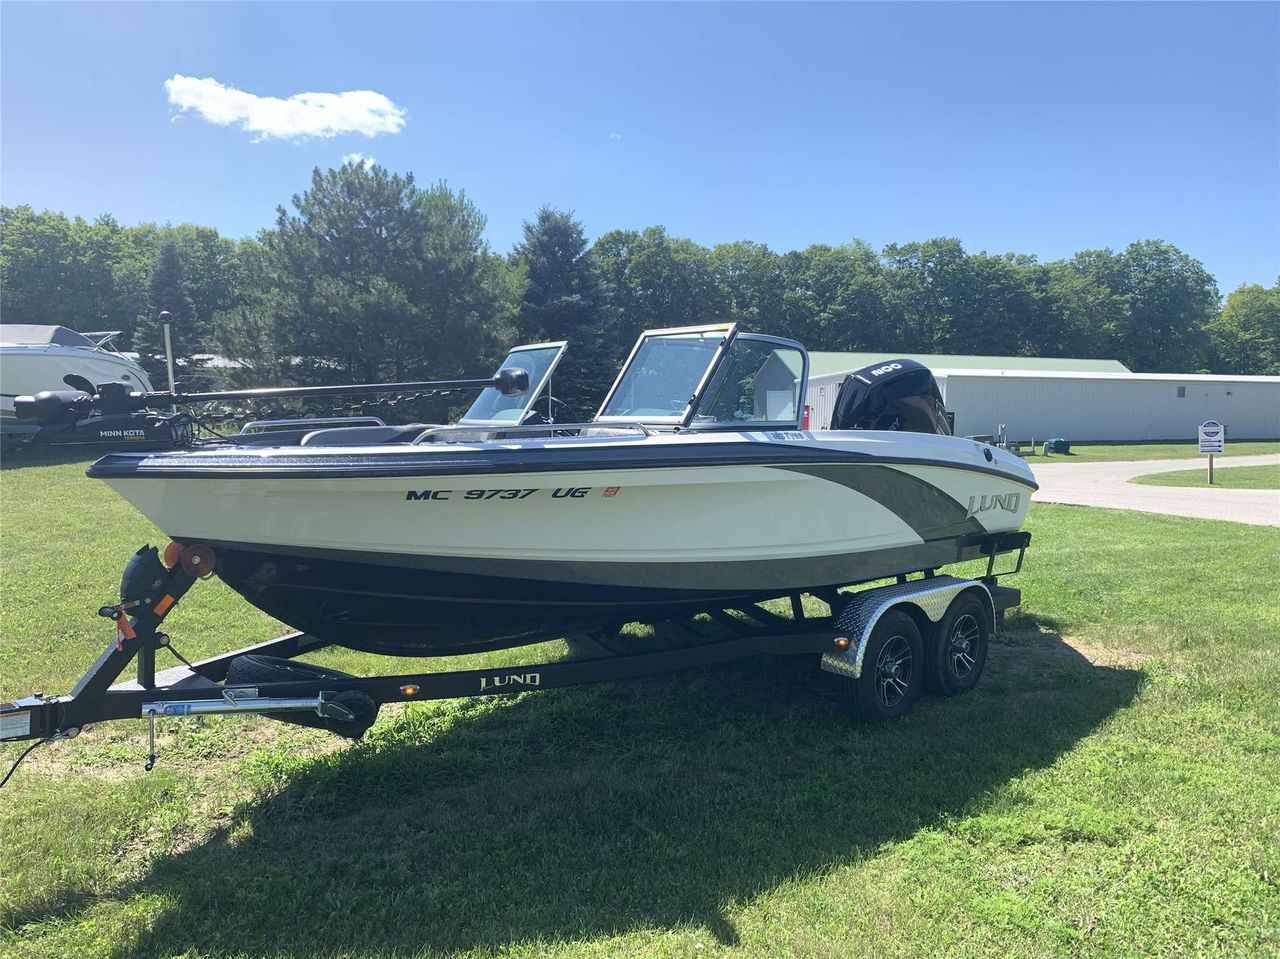 2019 Used Lund Tyee 189 Sports Fishing Boat For Sale 55 000 Walloon Lake Mi Moreboats Com